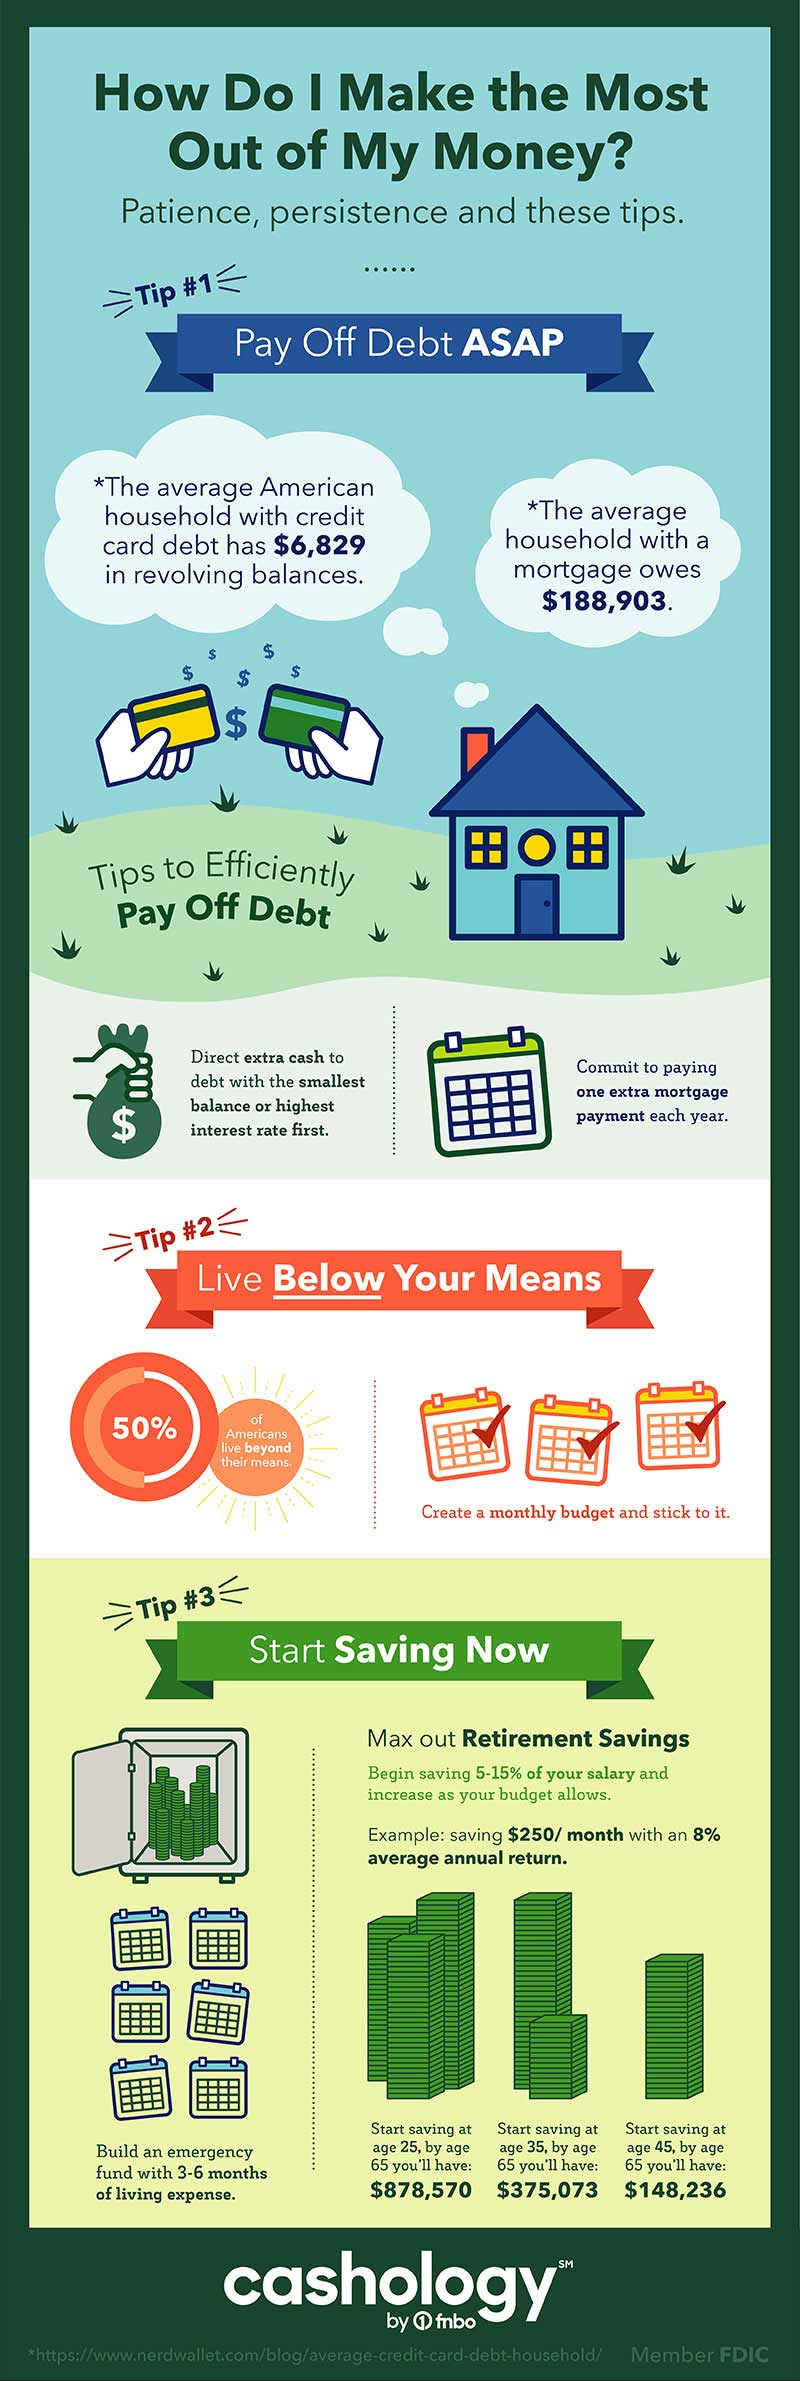 How do I make the most out of my money? Patience, persistence and these tips. Tip #1 - pay off debt ASAP. The average American household with credit card debt has $6,829 in revolving balances. The average household with a mortgage owes $188,903. Tips to efficiently pay off debt - Direct extra cash to debt with the smallest balance or the highest interest first. Commit to paying one extra mortgage payment each year. Tip #2 - live below your means. 50% of Americans live beyond their means. Create a monthly budget and stick to it. Tip #3 - start saving now. Max out retirement savings. Begin saving 5-15% of your salary and increase as your budget allows. Example: saving $250/month with an 8% average annual return. Start saving at age 25, by age 65 you'll have $878,570. Start saving at age 35, by age 65 you'll have $375,073. Start saving at age 45, by age 65 you'll have $148,236.